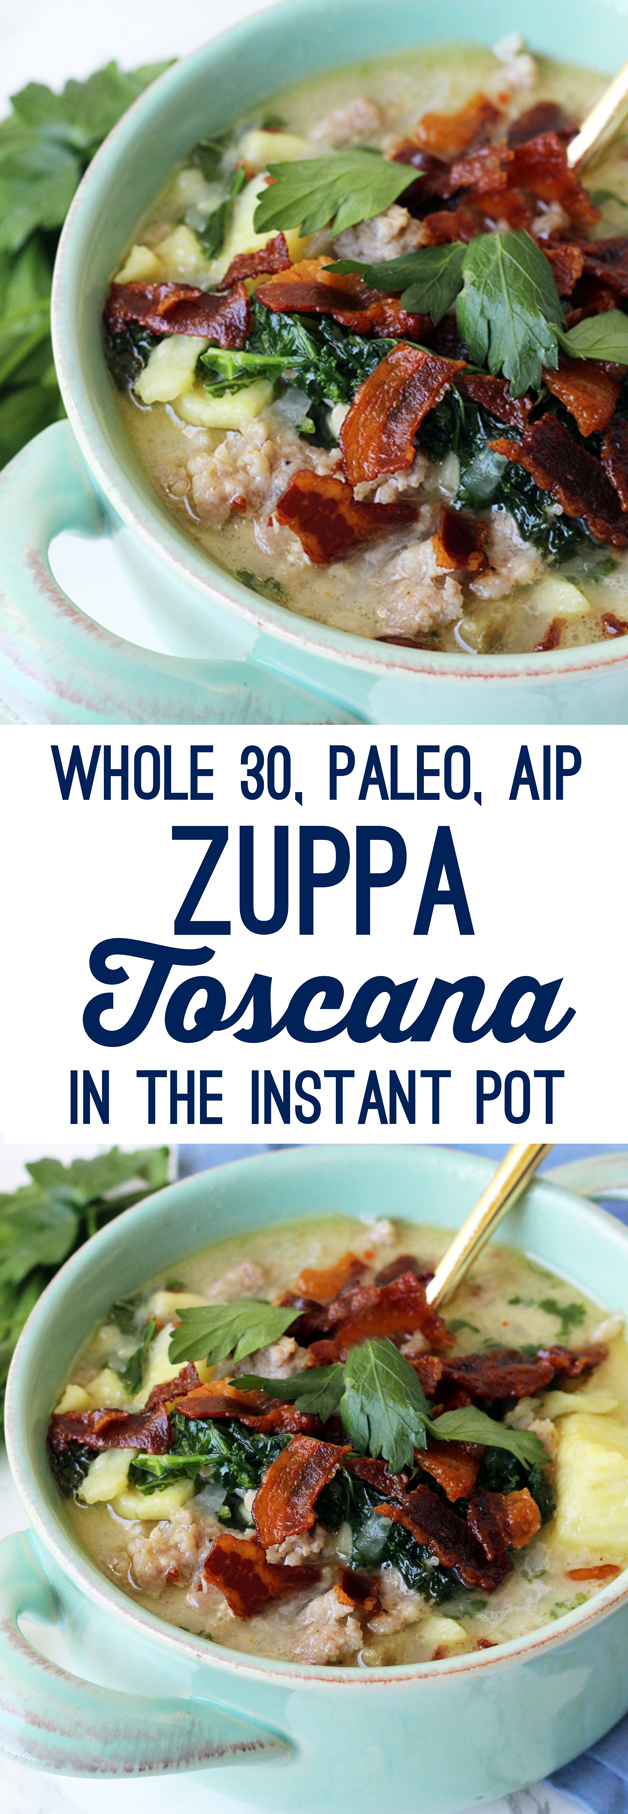 Paleo Zuppa Toscana In The Instant Pot (Whole 30 & AIP)